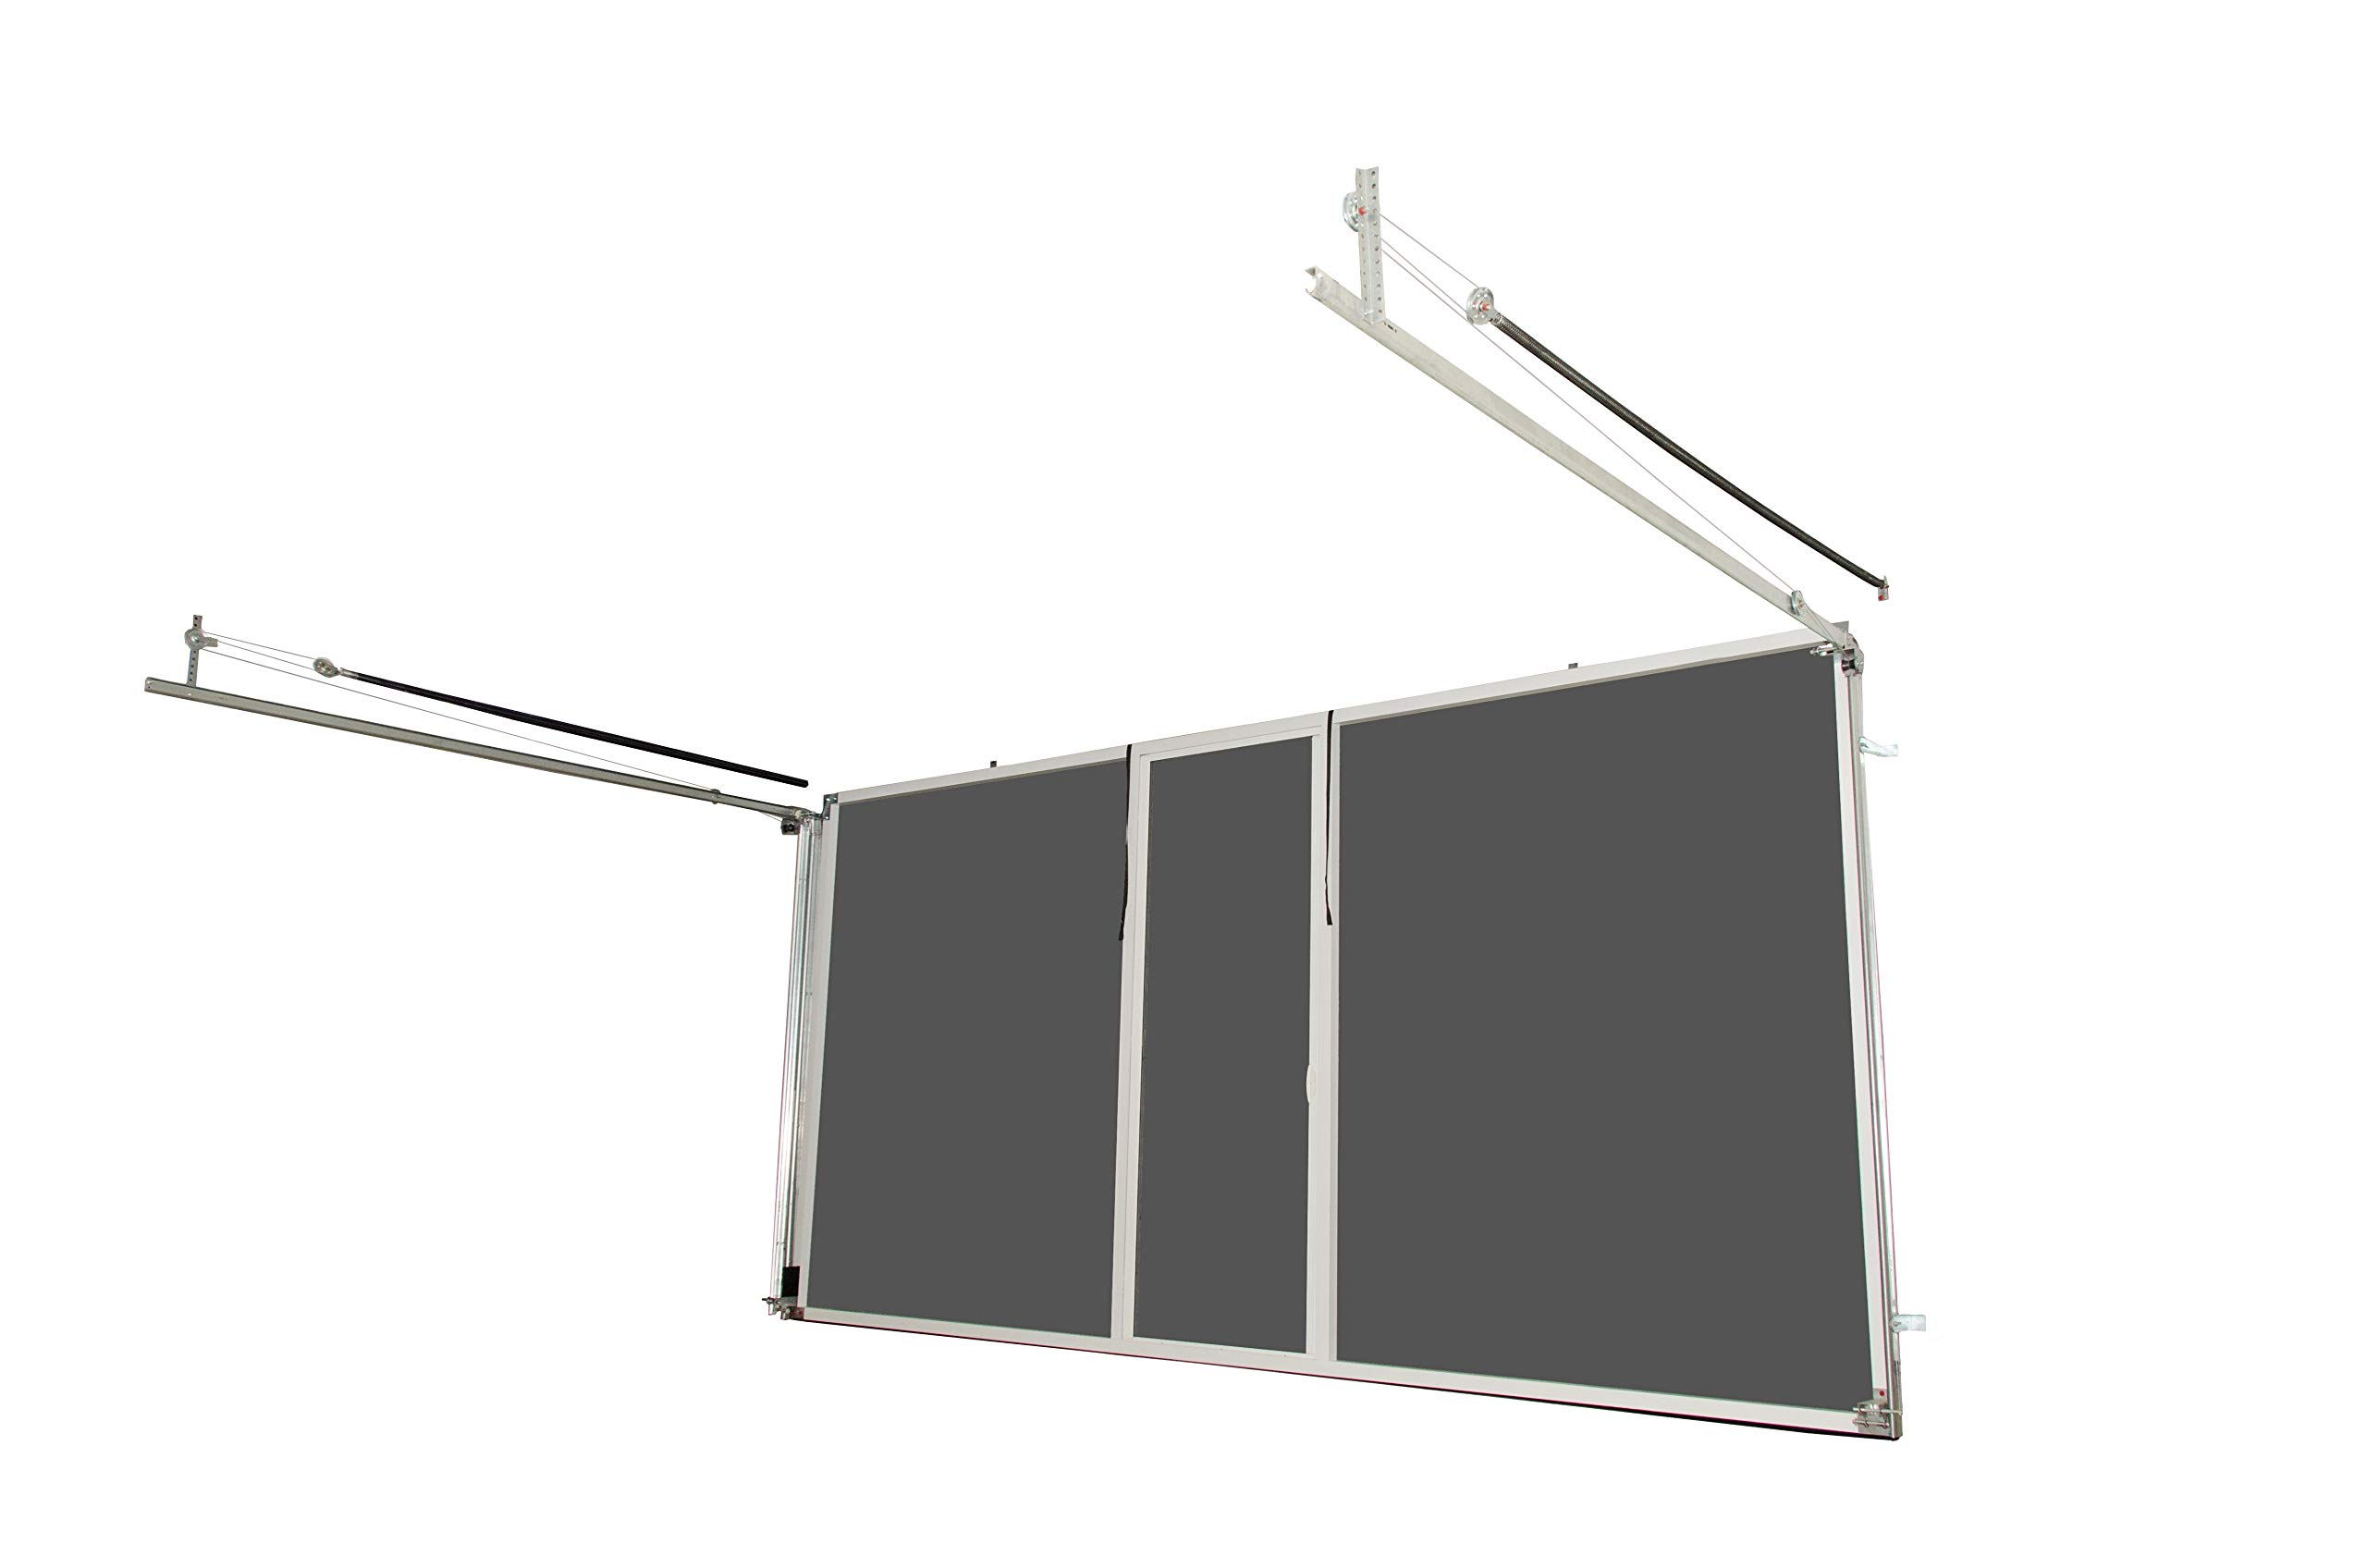 Lifestyle Screens Garage Door Screen 7'H with Standard Screen Material (All Widths & All Colors) (16'Wx7'H, Brownstone) by Lifestyle Screens (Image #1)